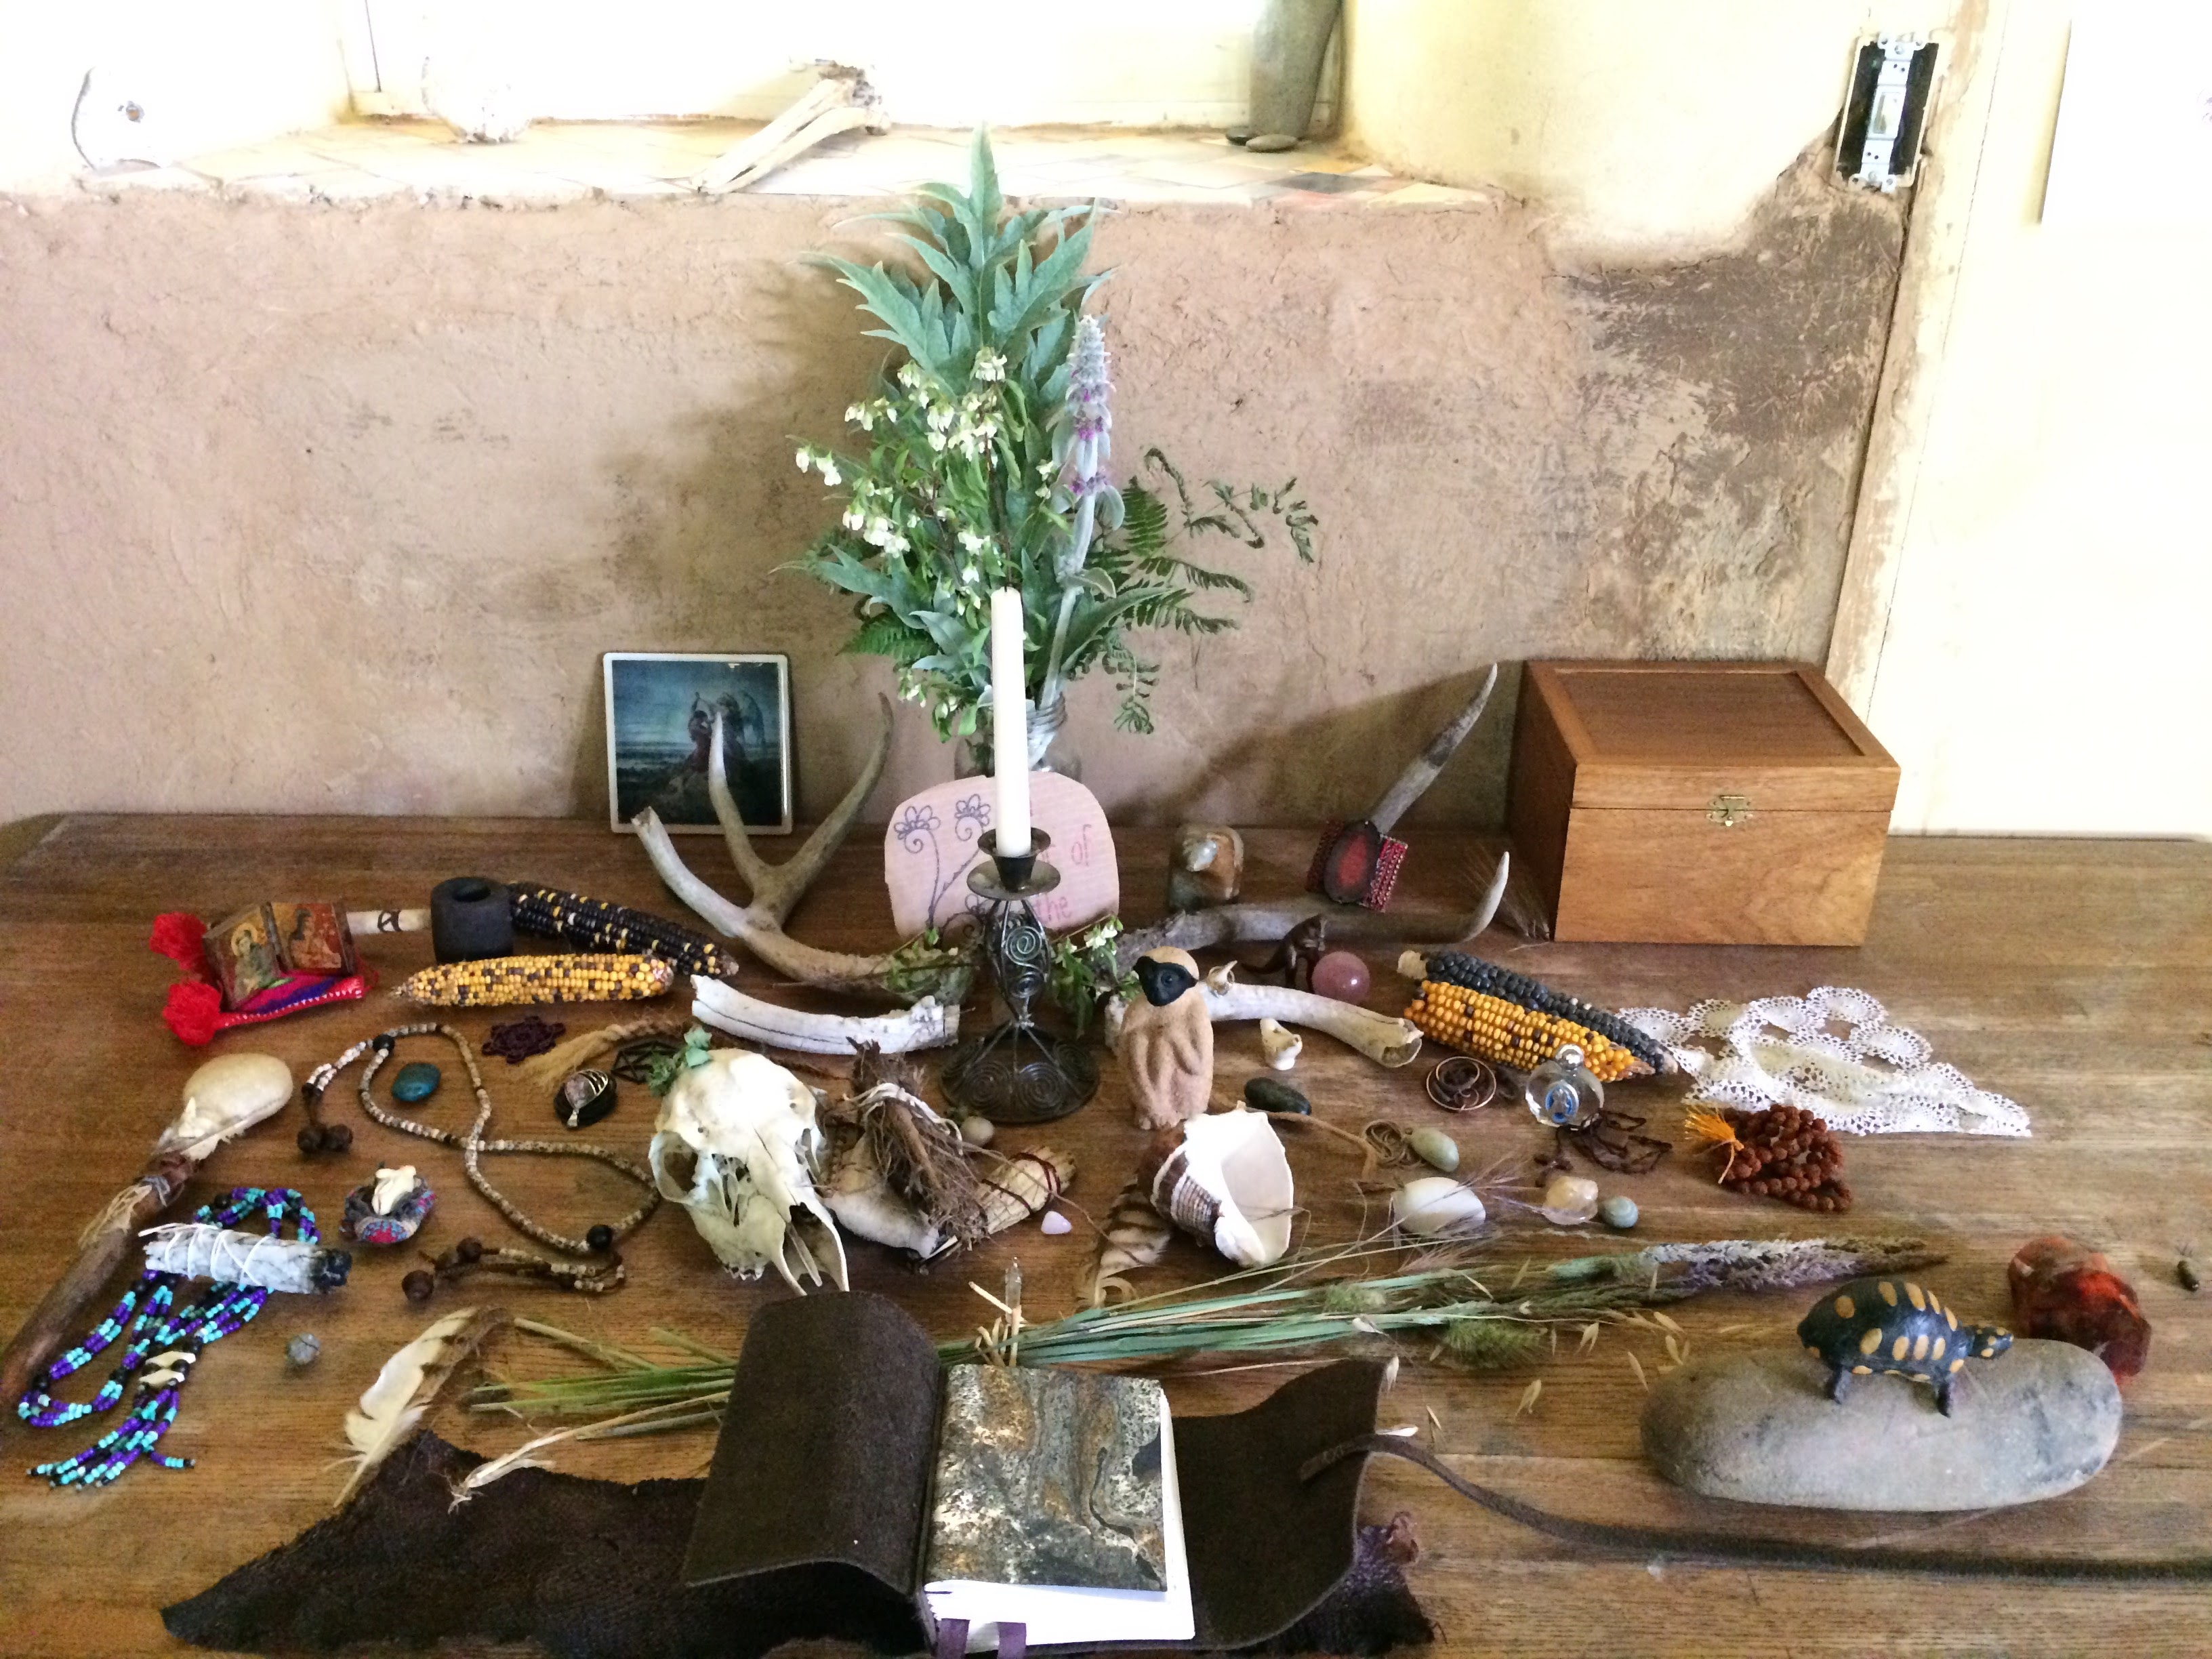 A wooden table holds a collection of objects: A book, some necklaces, stones, a wooden box, a corn husk, some photos and two bunches of leaves.